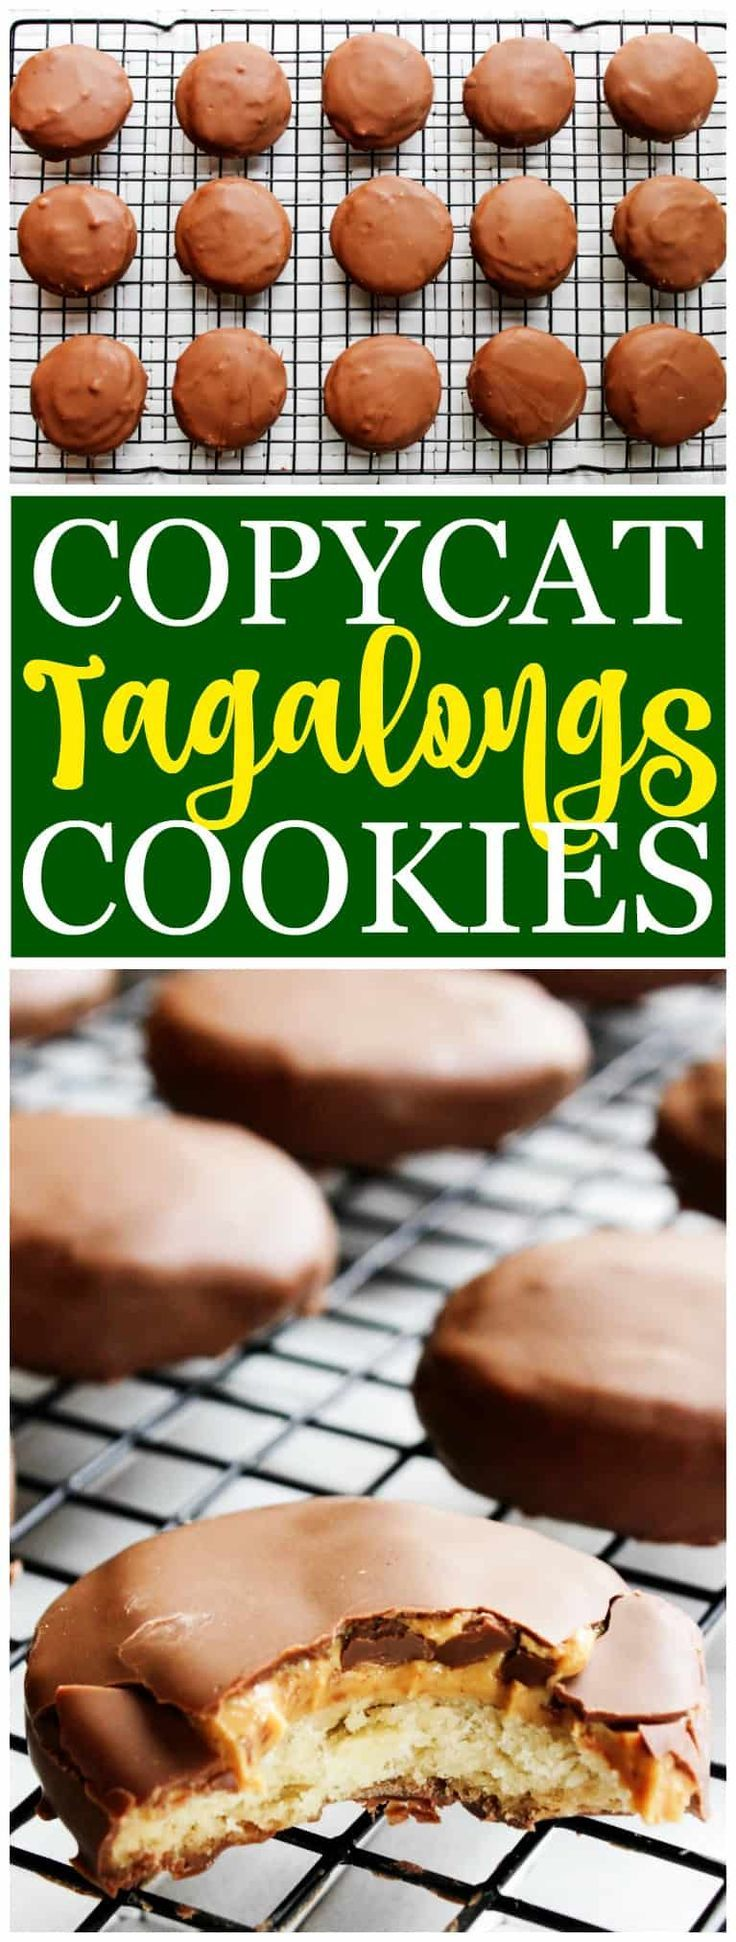 Copycat Girl Scout Tagalong Cookies - Made with a butter cookie base, peanut butter center and covered in milk chocolate,